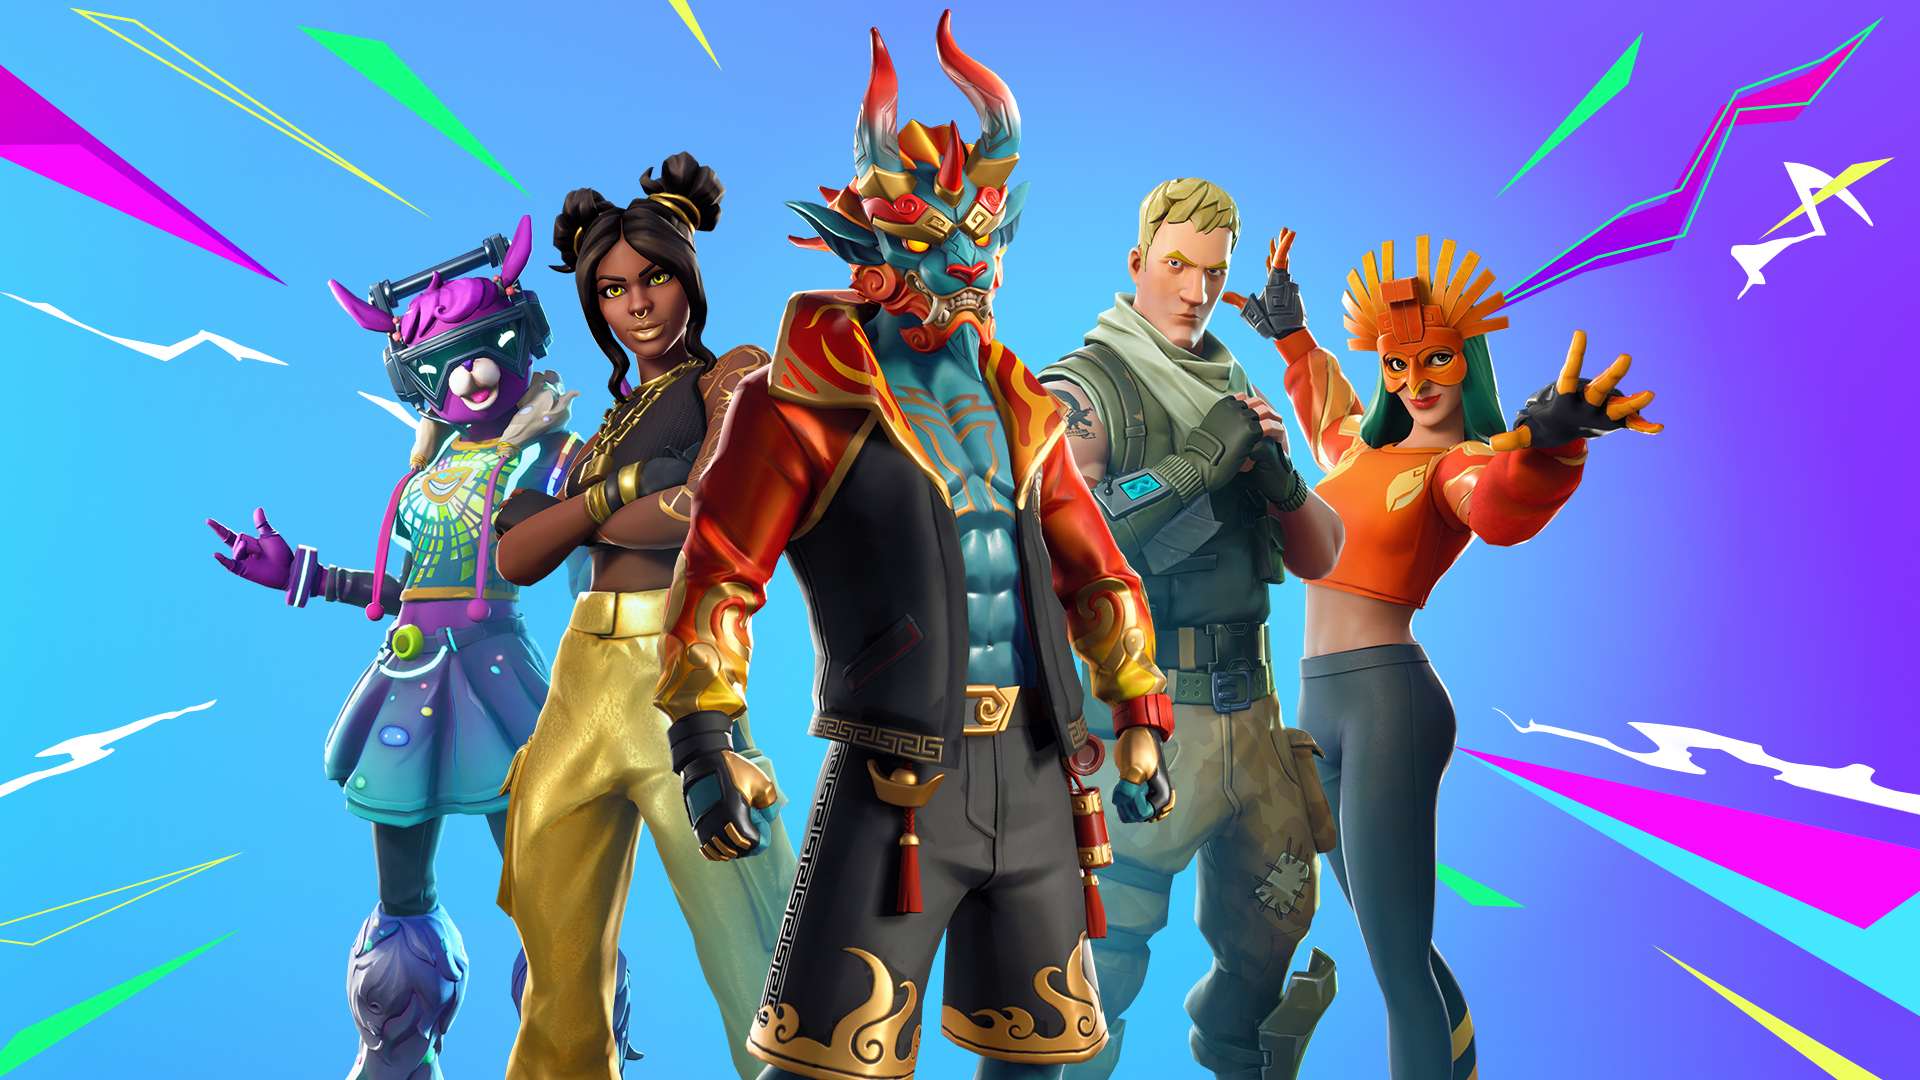 The best skins in Fortnite: Battle Royale